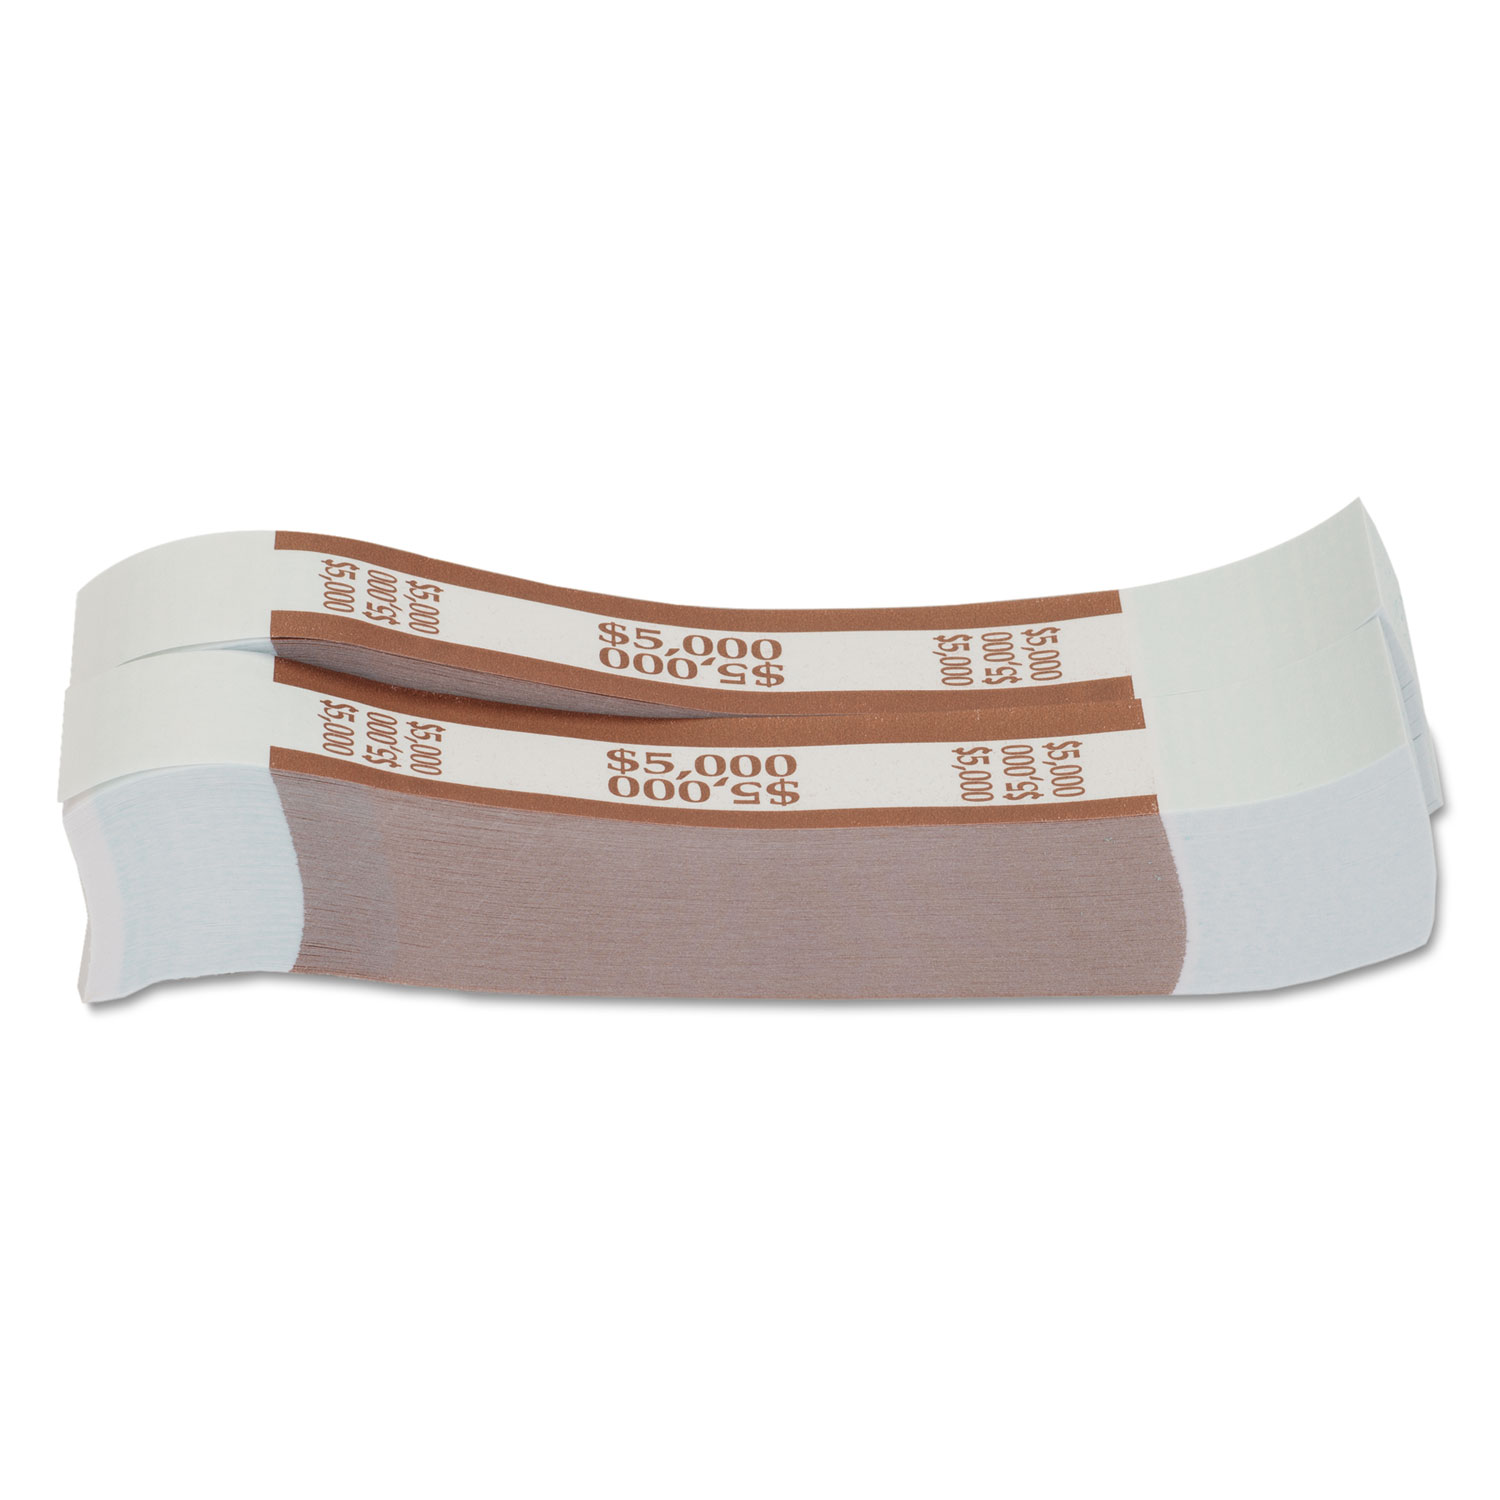 Currency Straps, Brown, $5,000 in $50 Bills, 1000 Bands/Pack